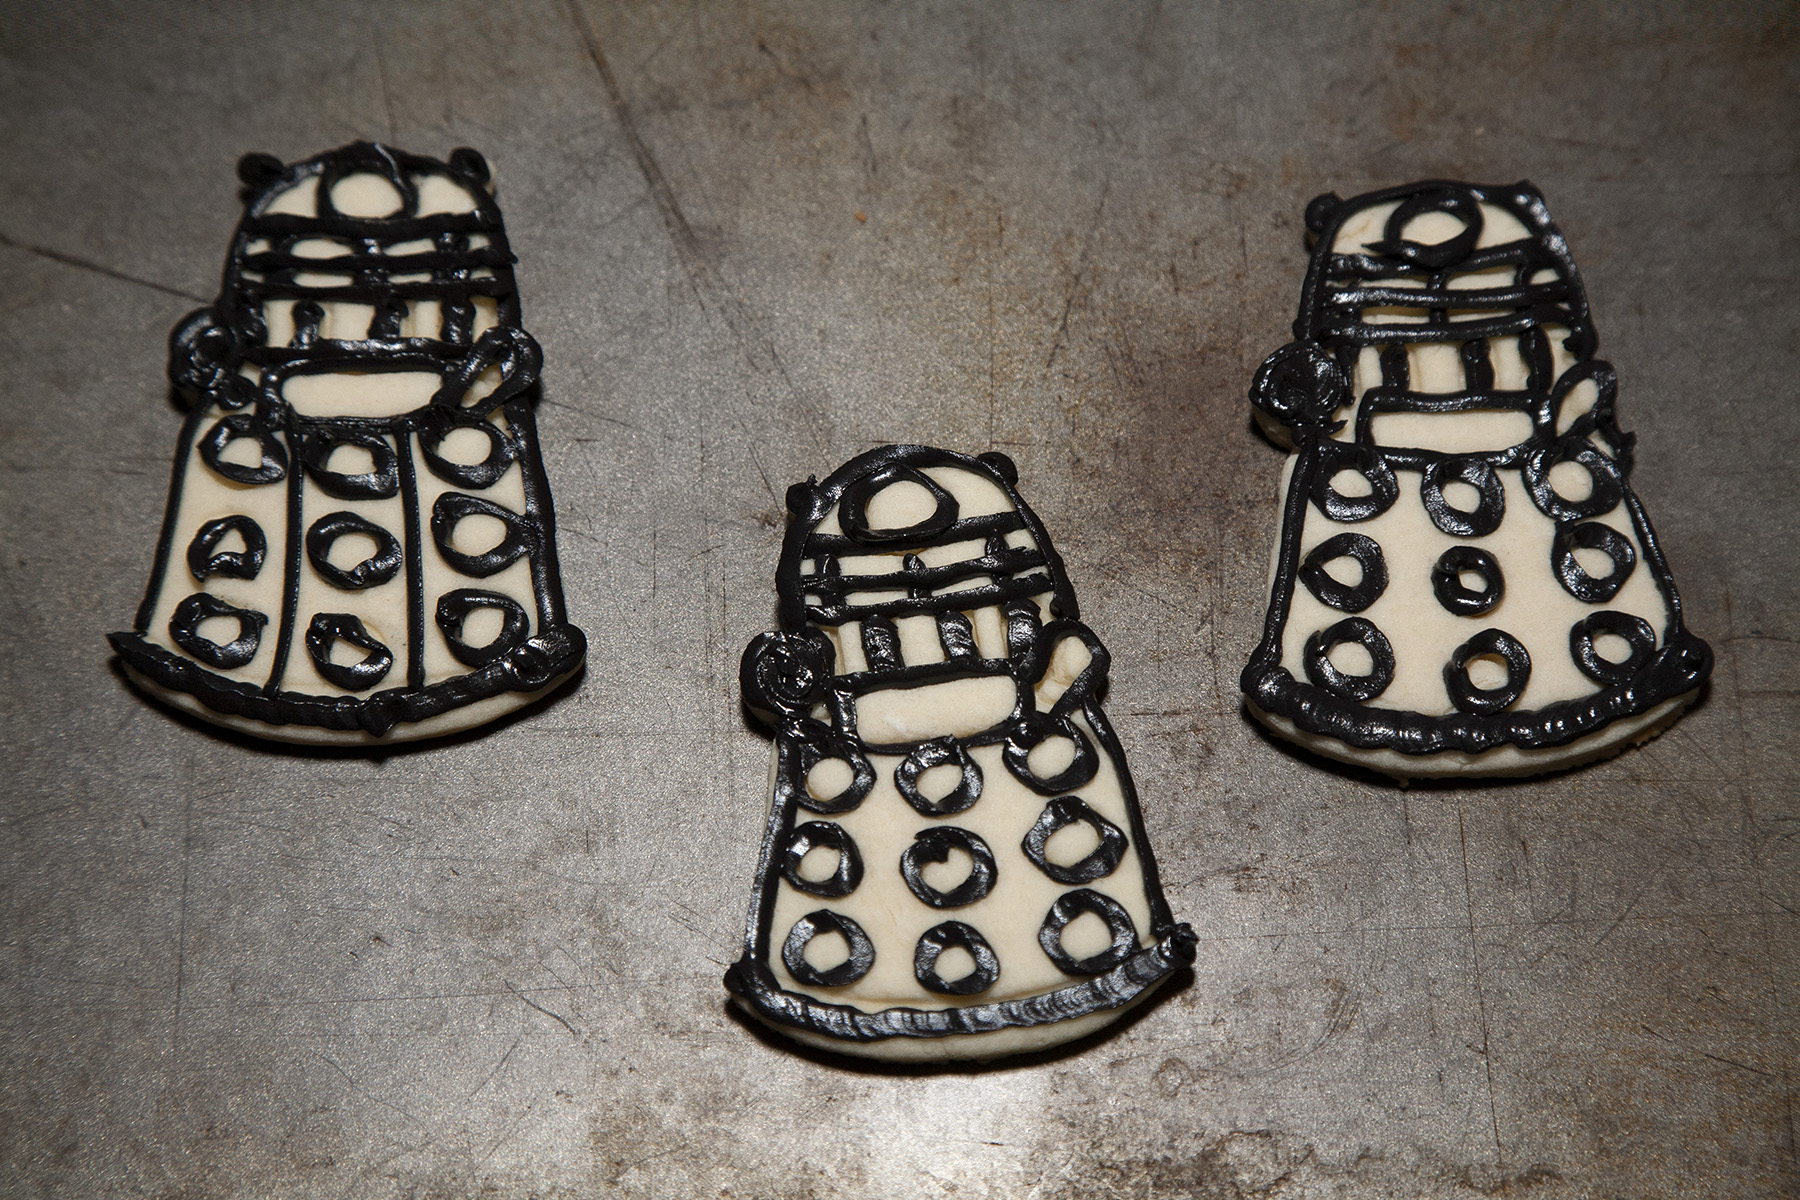 2 Dalek sugar cookies, completely outlined with black frosting.